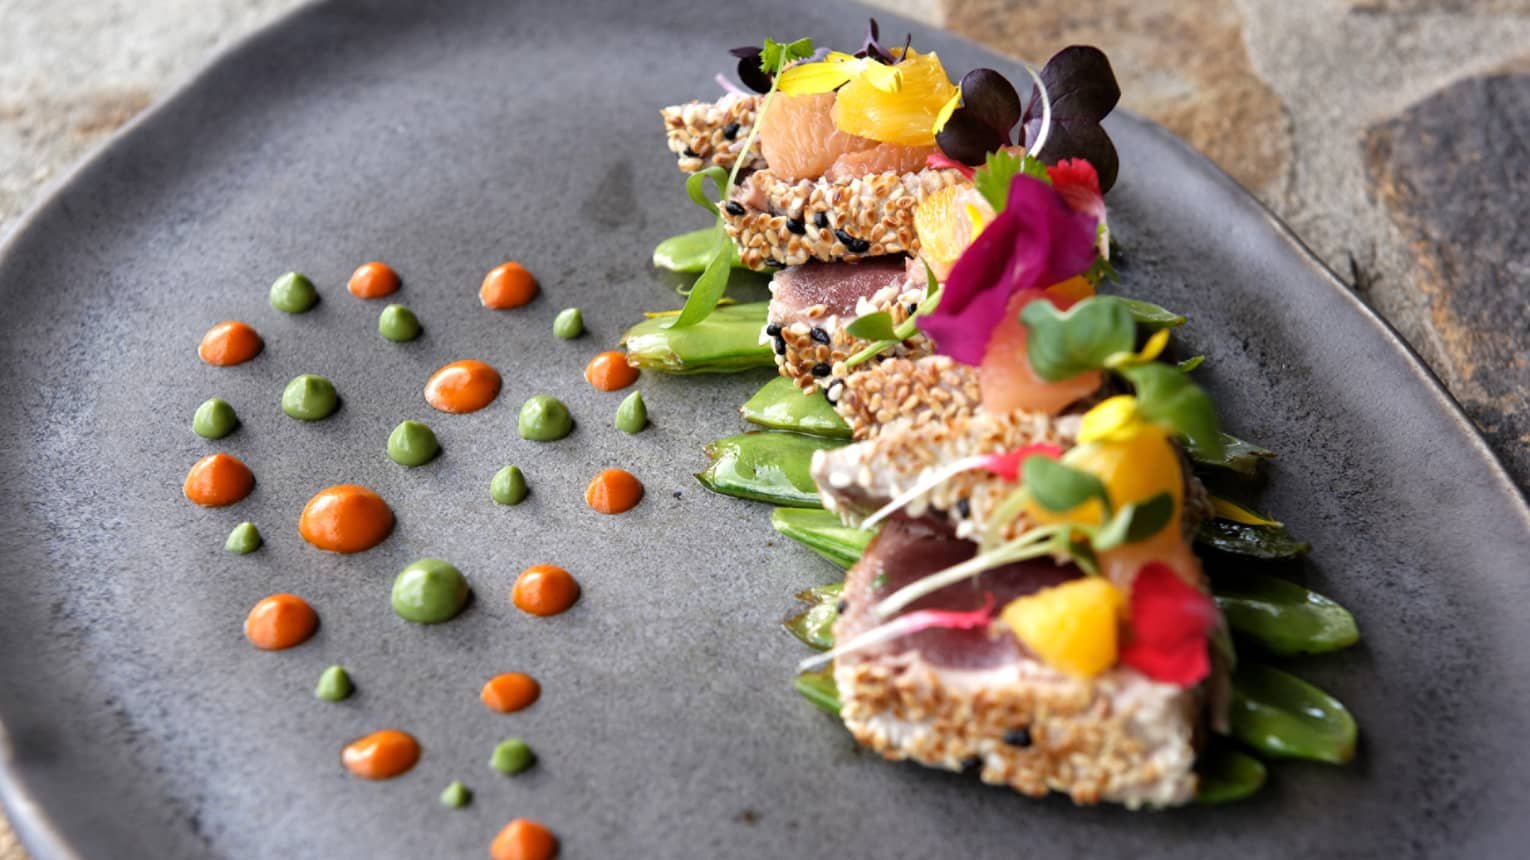 Sesame-crusted tuna topped with colourful edible flowers and green & orange dots